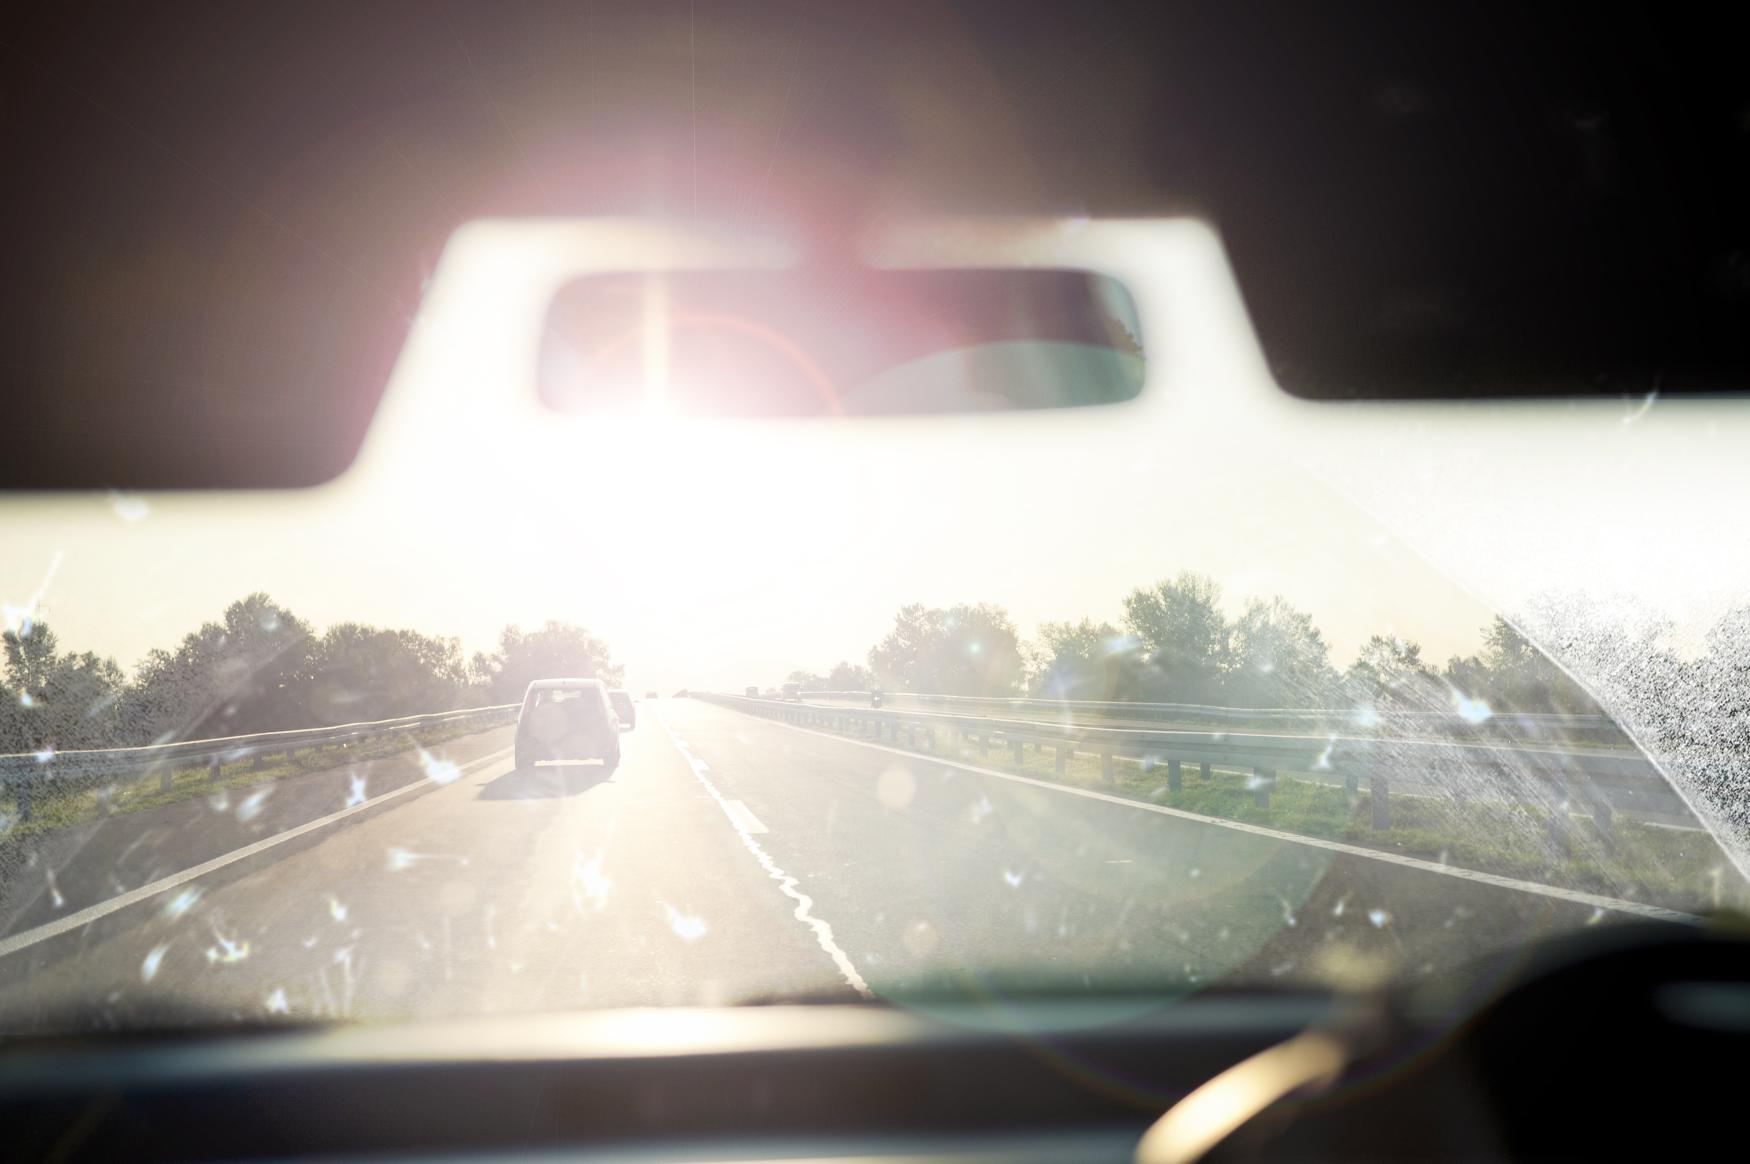 Streaky windows can be a common nuisance during winter